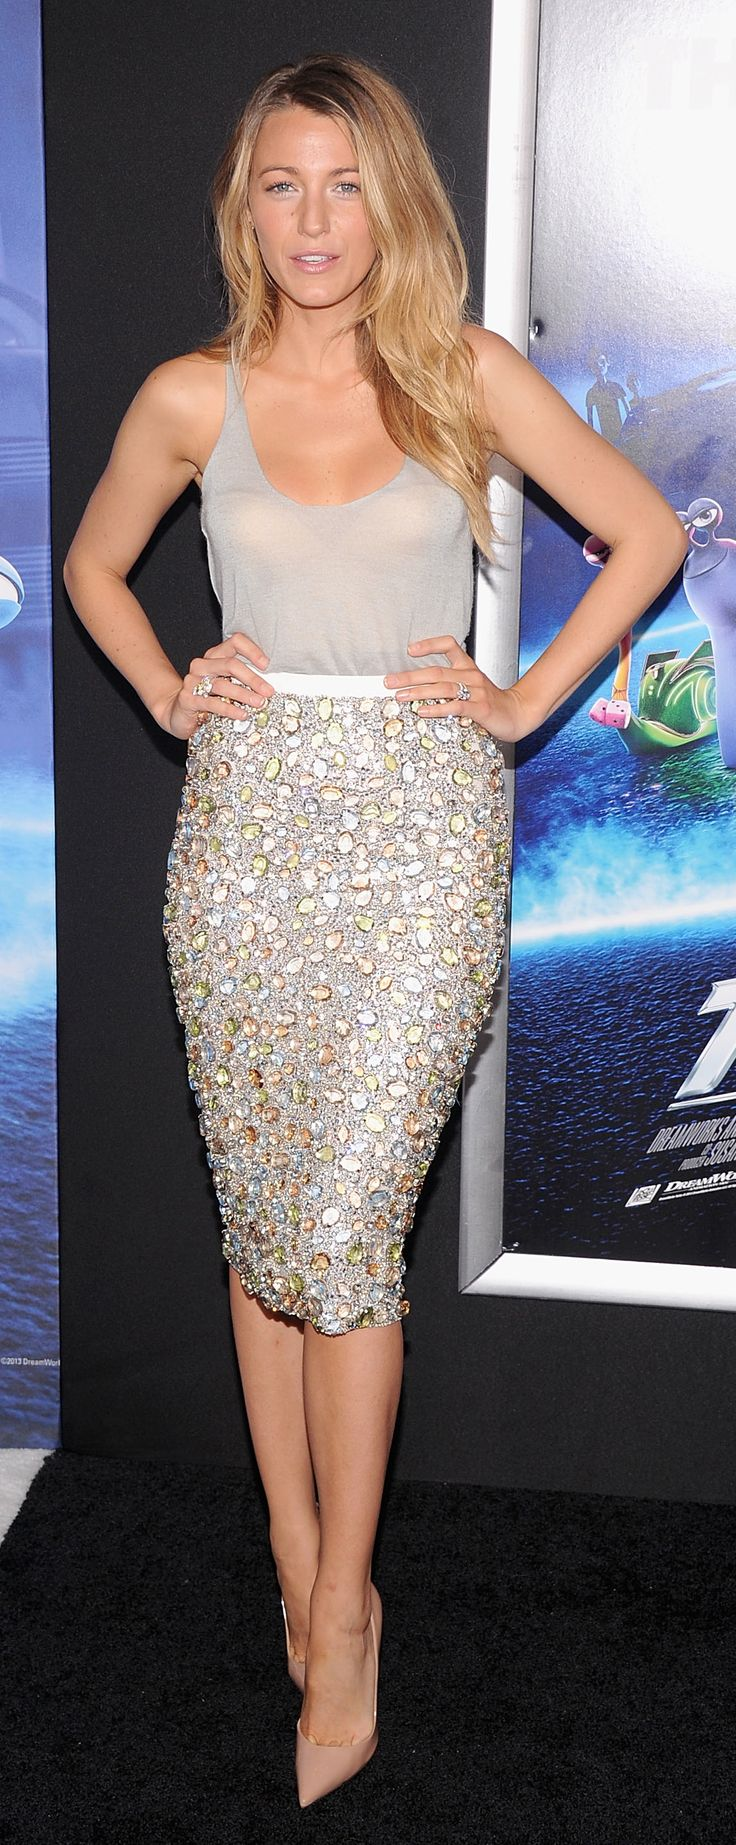 Blake Lively wearing Burberry to attend the premiere of Turbo